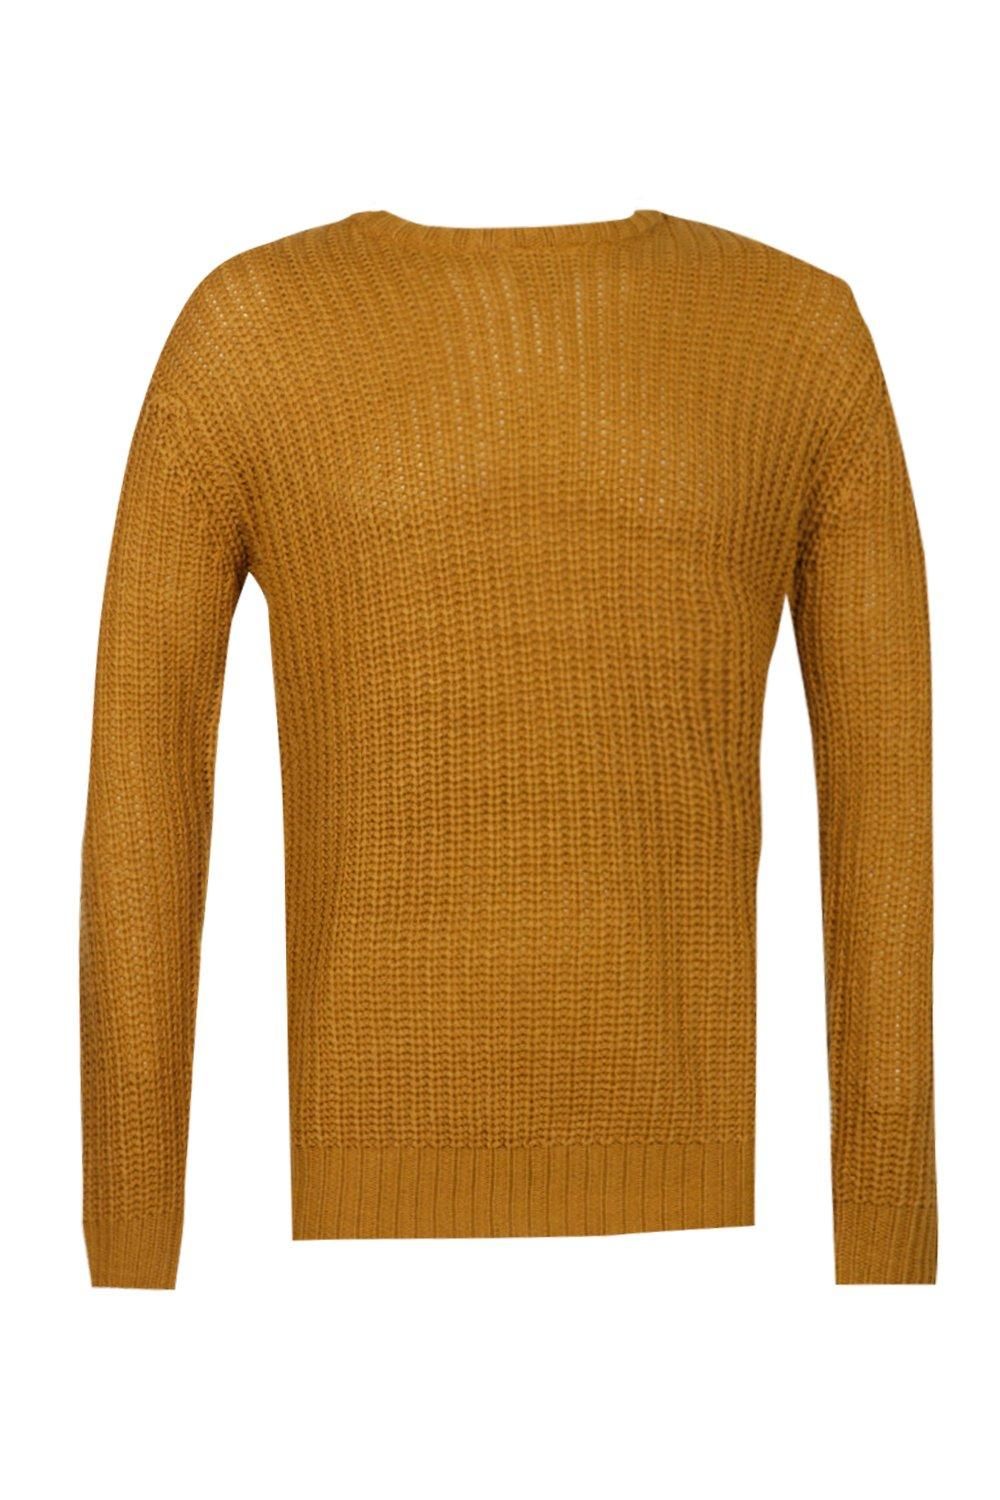 boohooMAN mustard Crew Neck Fisherman Knit Jumper